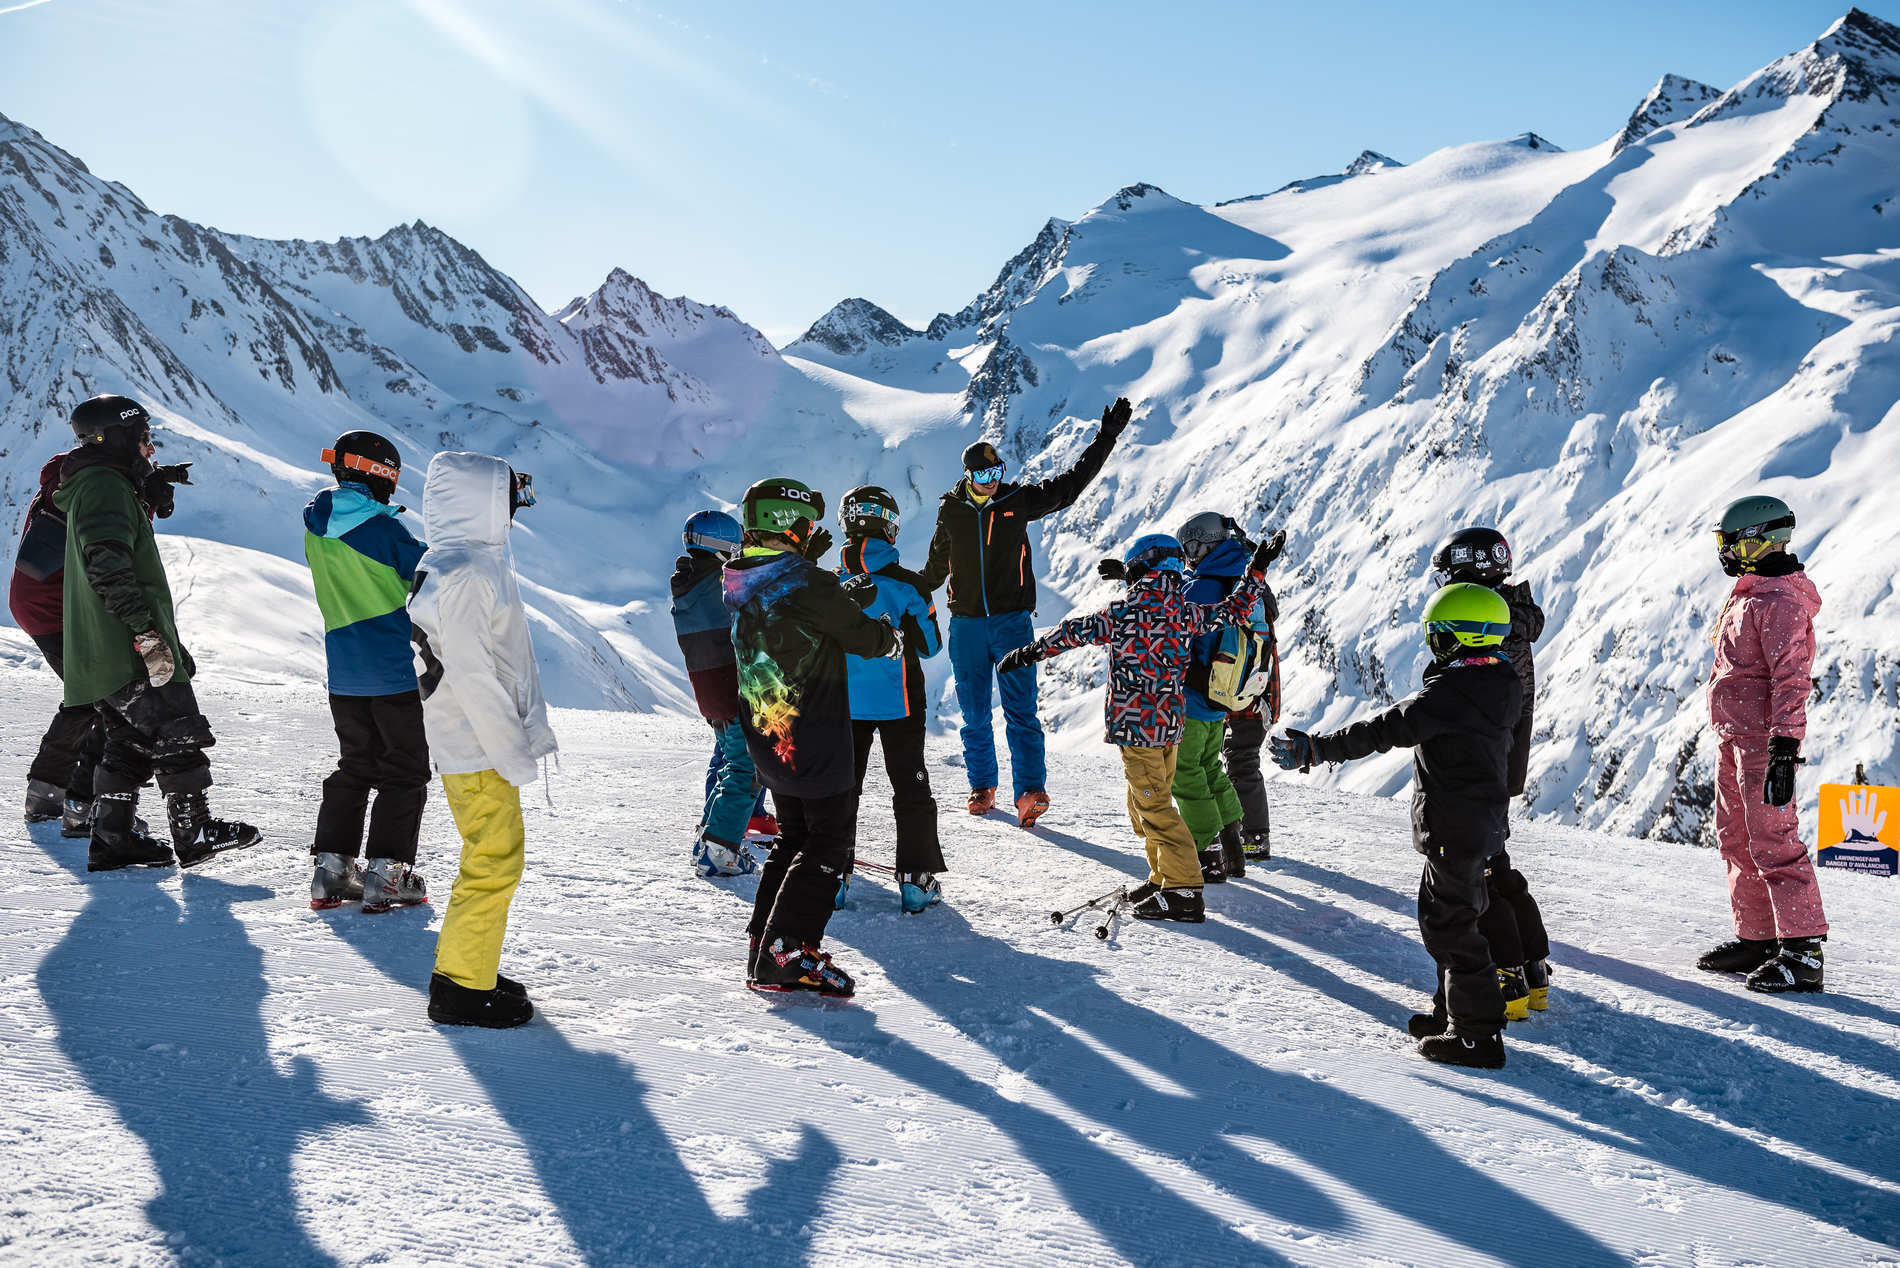 obergurgl 15 02 2019 lifestyle fs sb christian riefenberg qparks 9